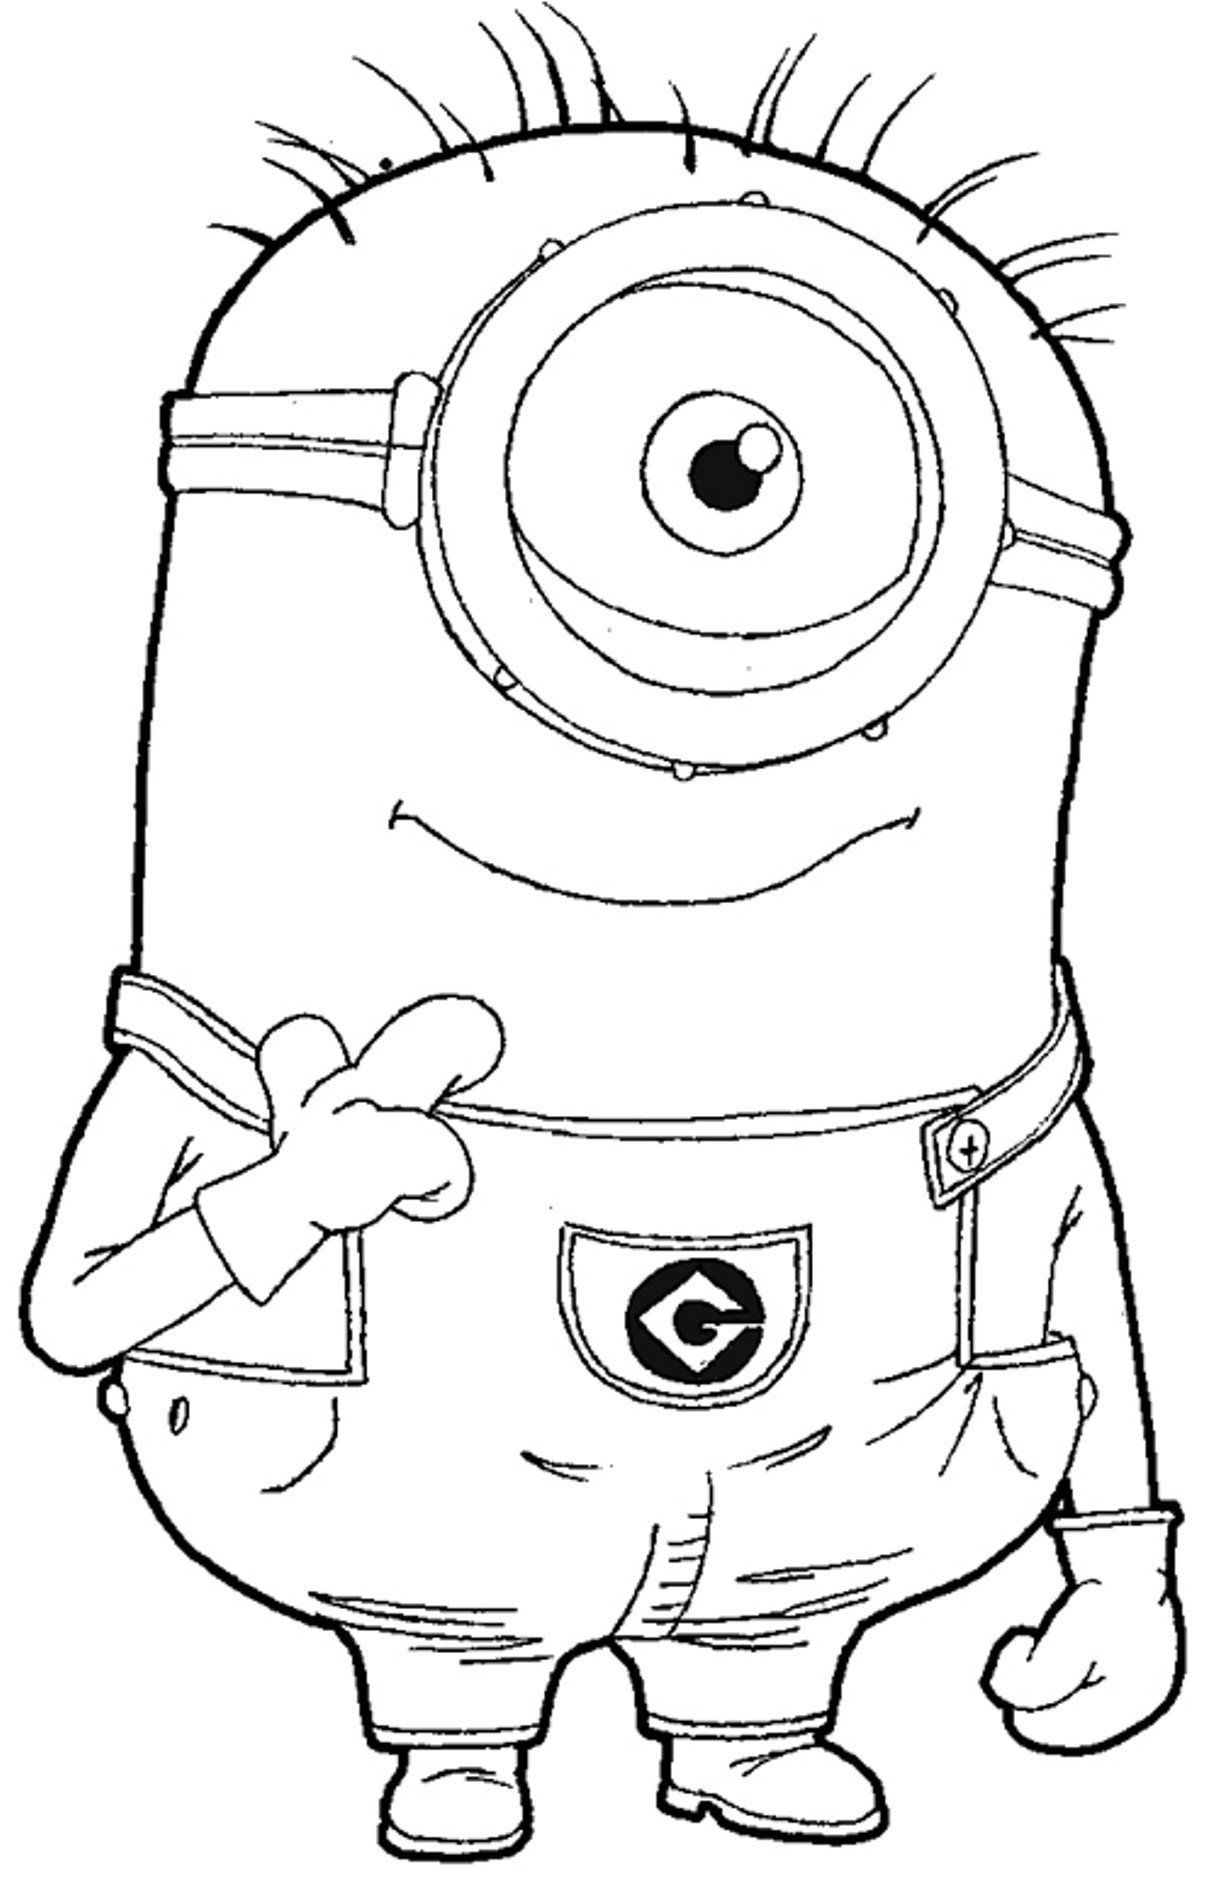 despicable me coloring pictures goodies despicable me me pictures despicable coloring